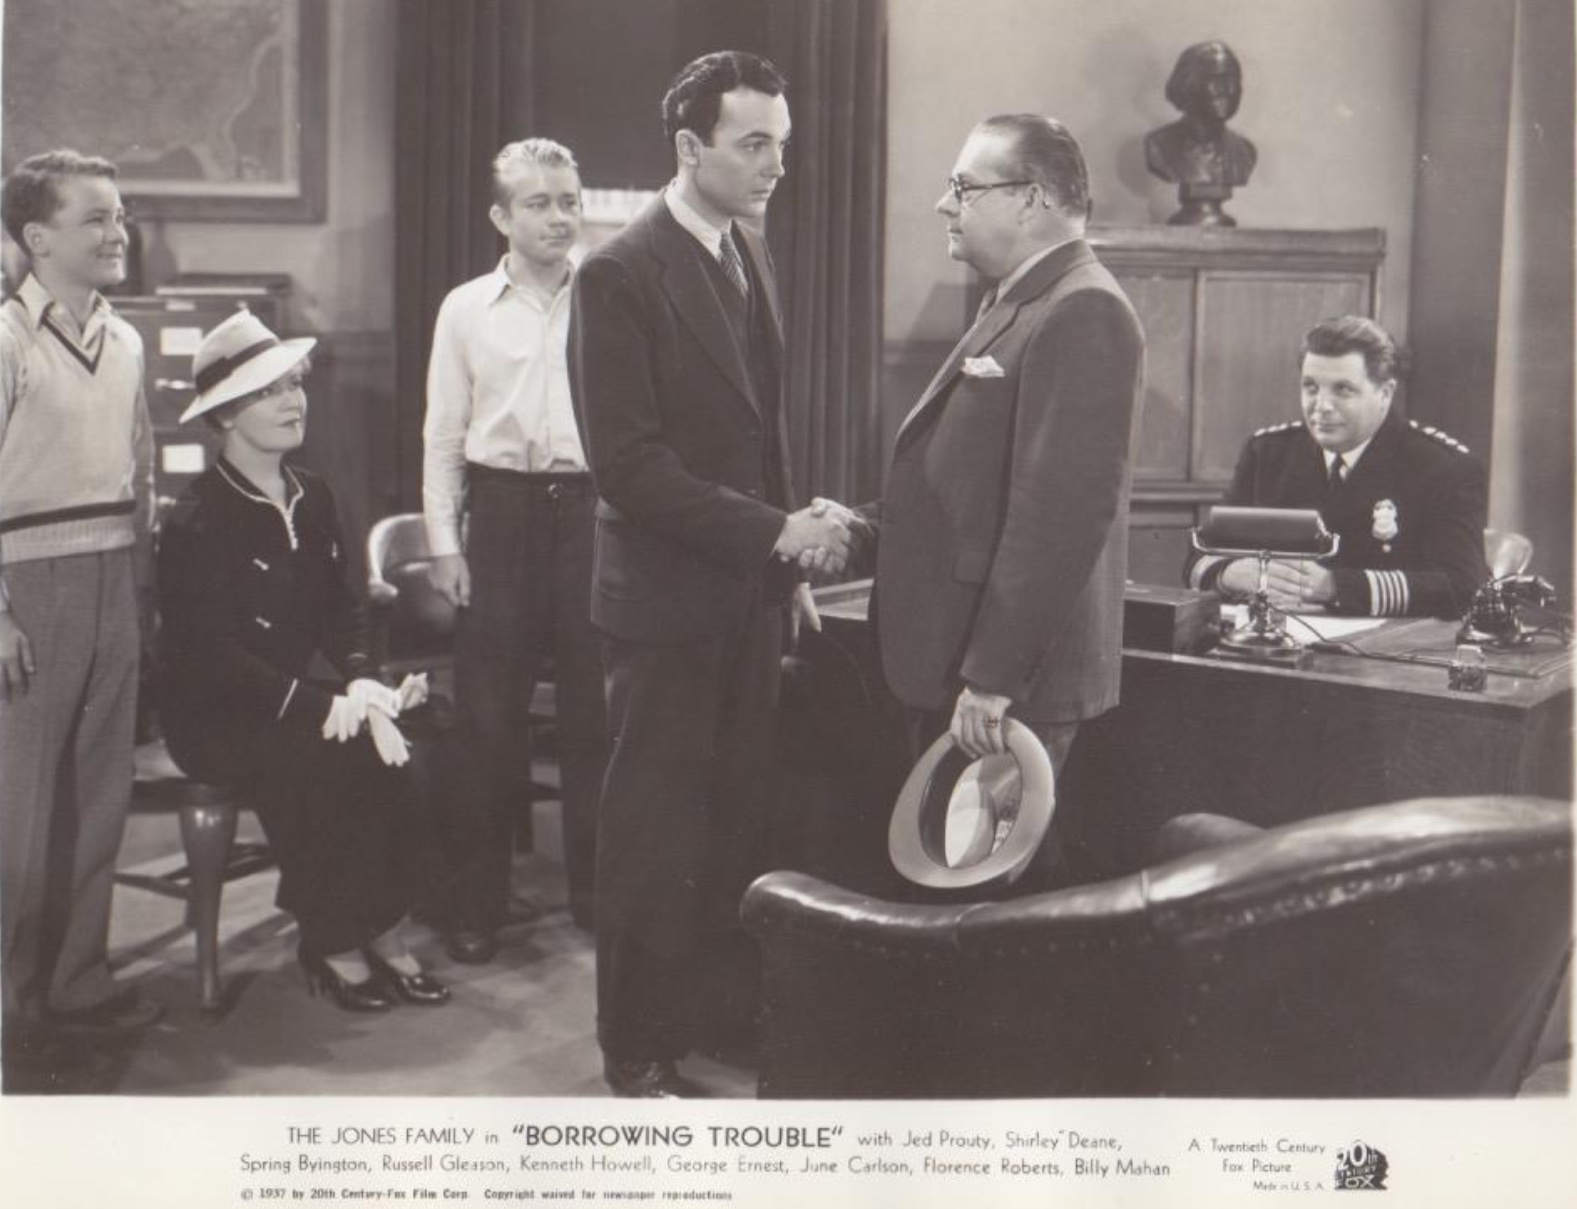 Spring Byington, George Ernest, Russell Gleason, Kenneth Howell, Cy Kendall, and Jed Prouty in Borrowing Trouble (1937)